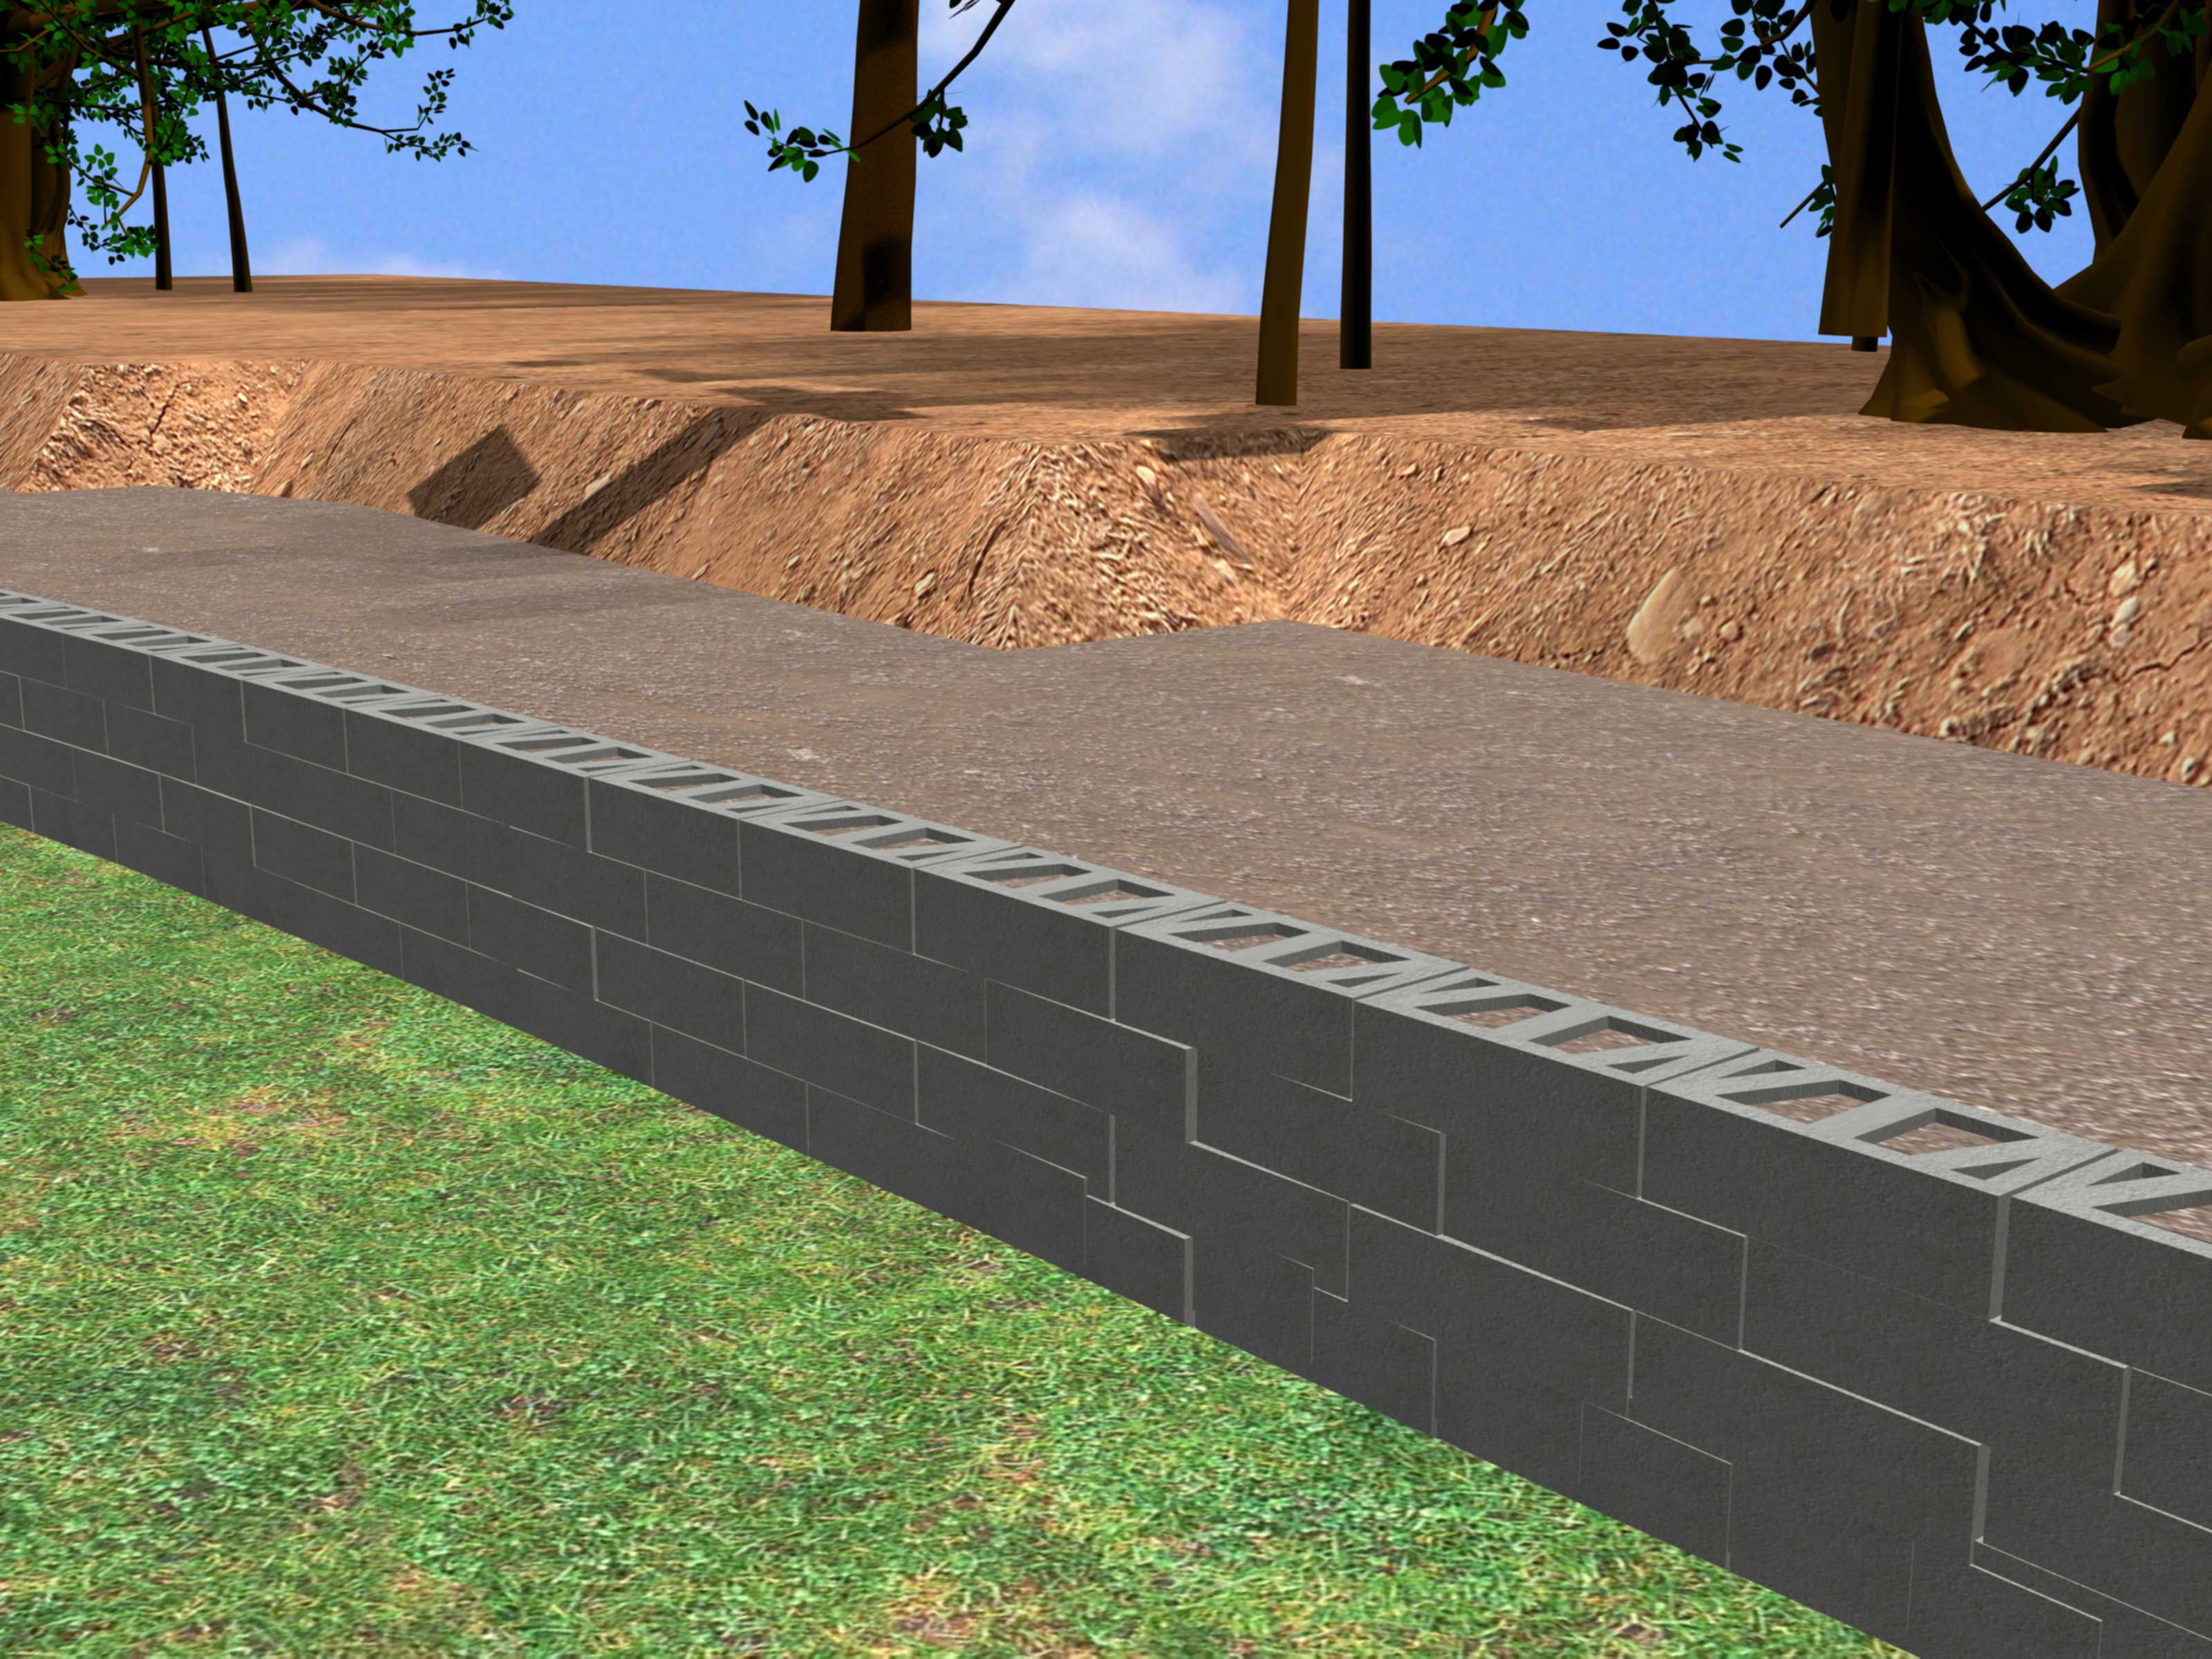 How To Construct A Block Retaining Wall: 14 Steps (with